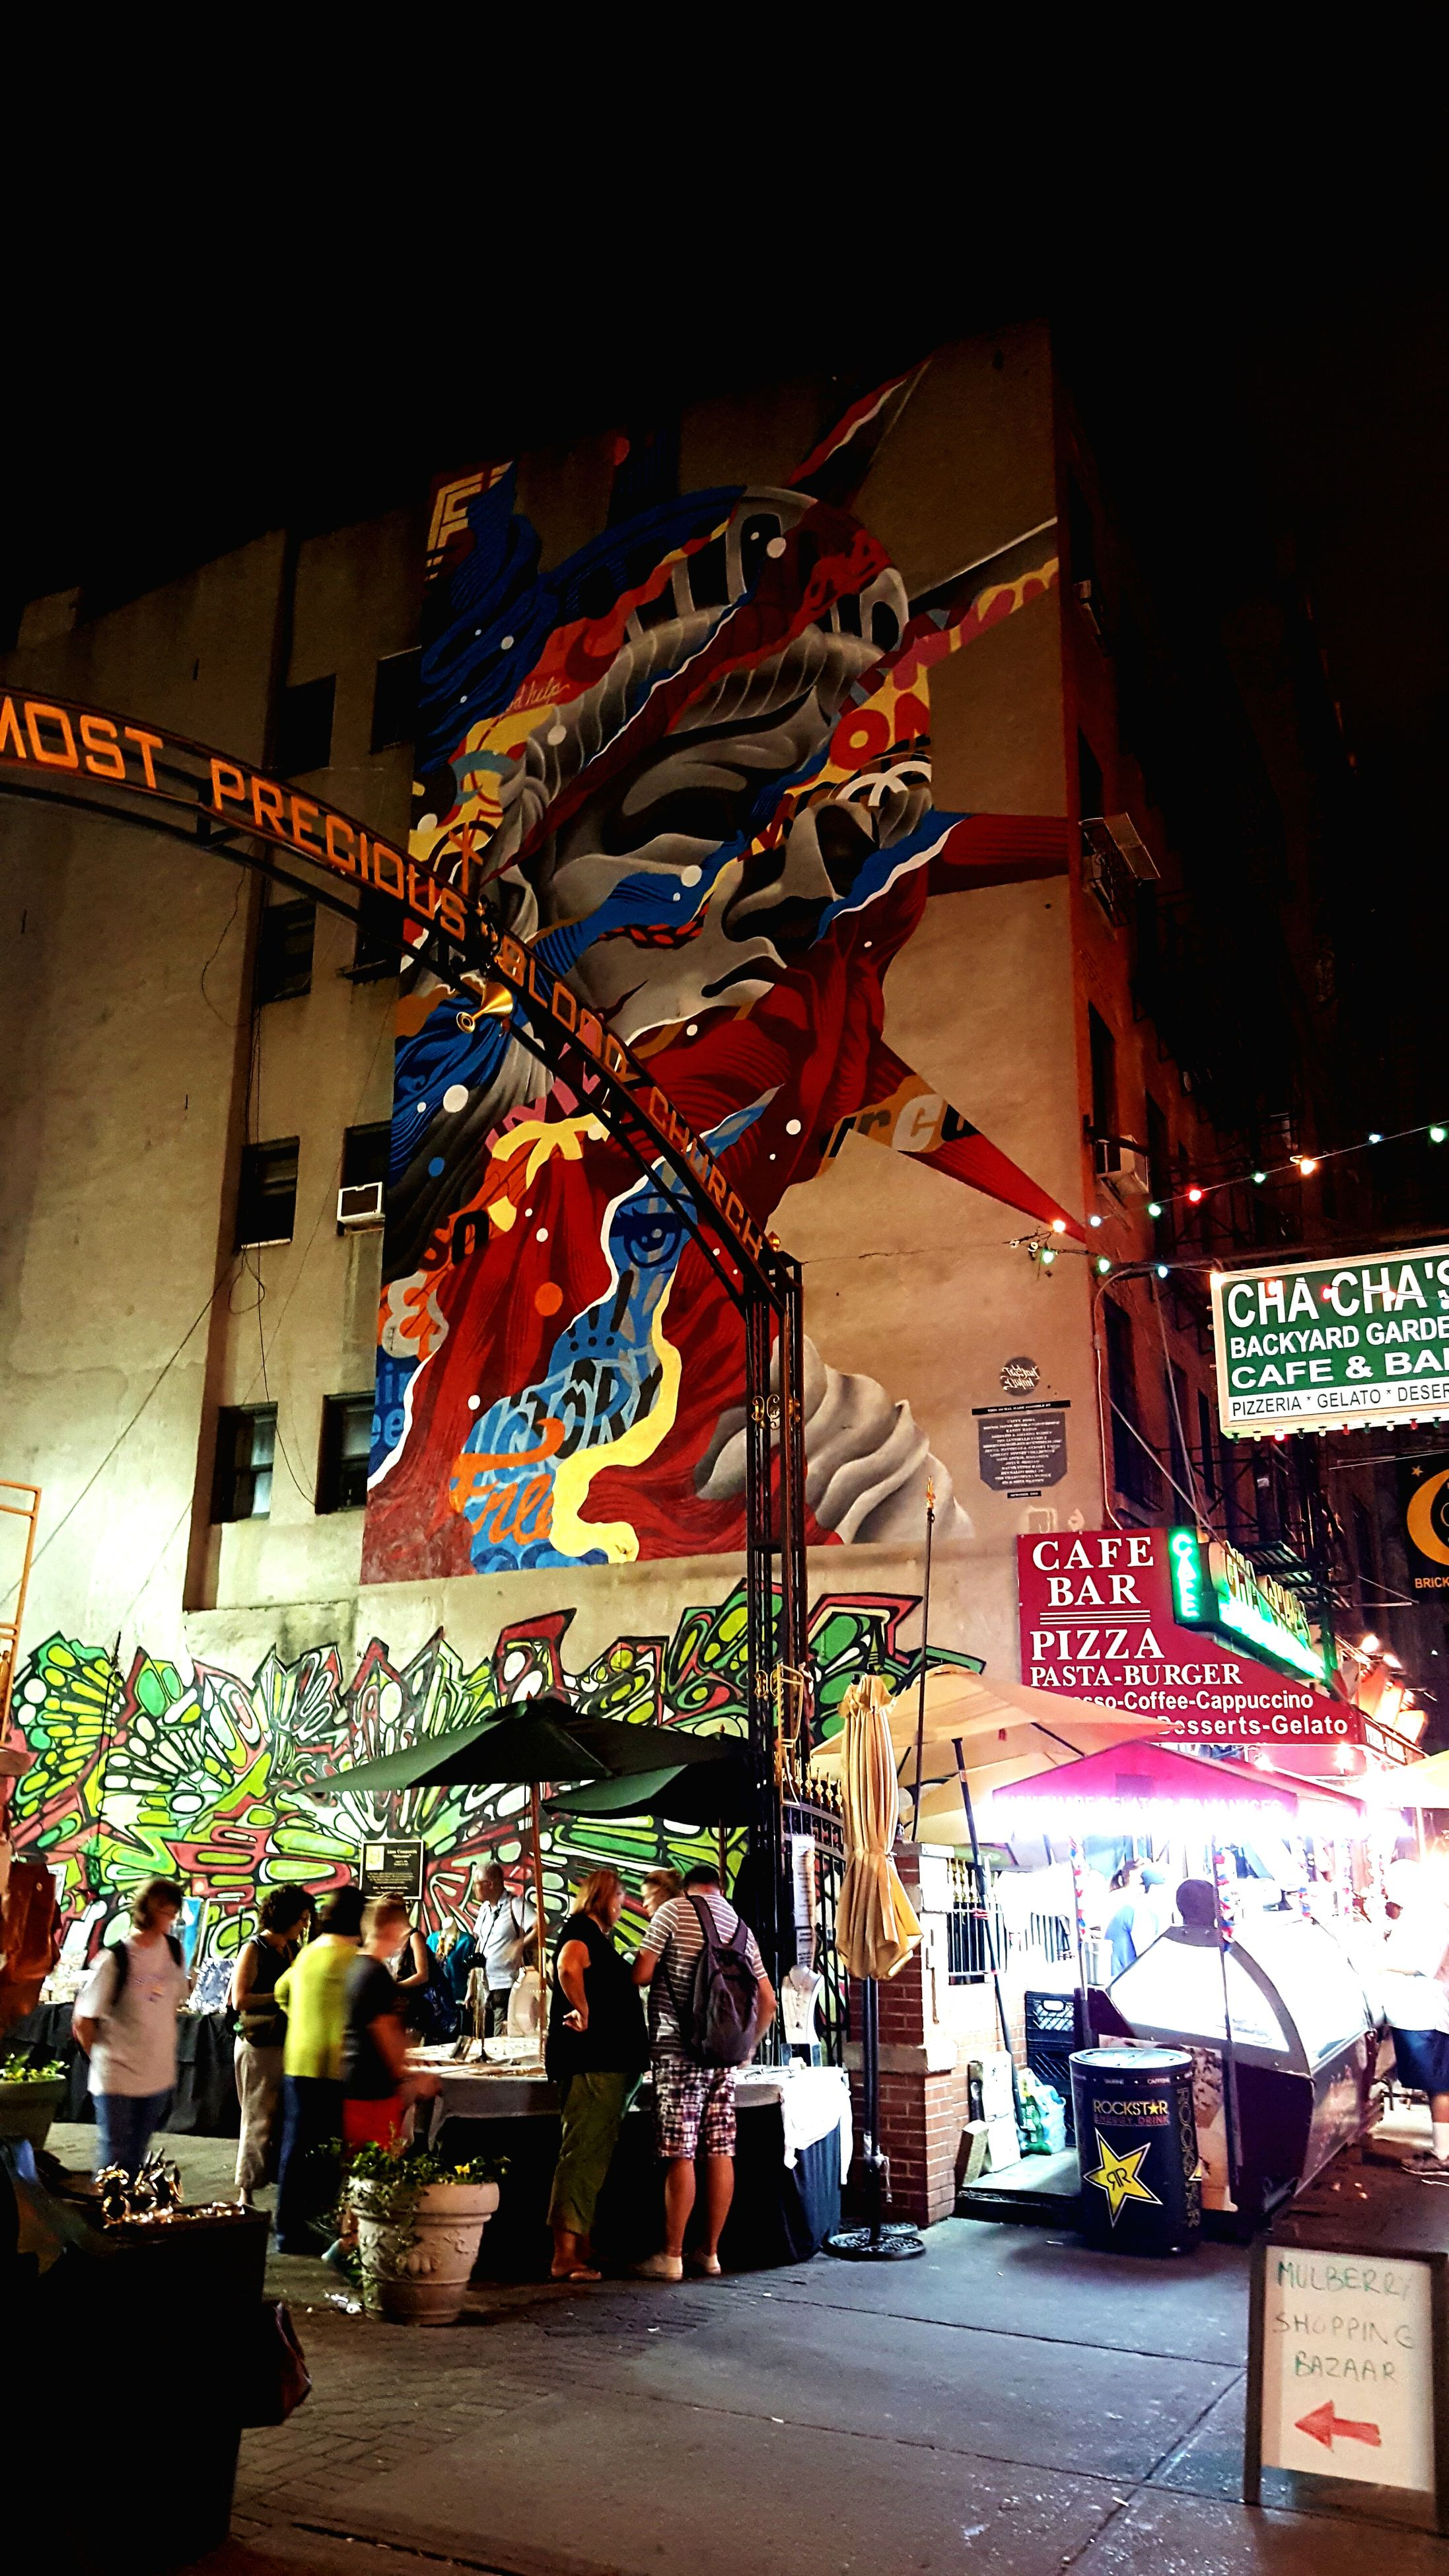 architecture, building exterior, built structure, night, illuminated, city, street, text, graffiti, art, incidental people, outdoors, western script, road, art and craft, communication, multi colored, city life, creativity, low angle view